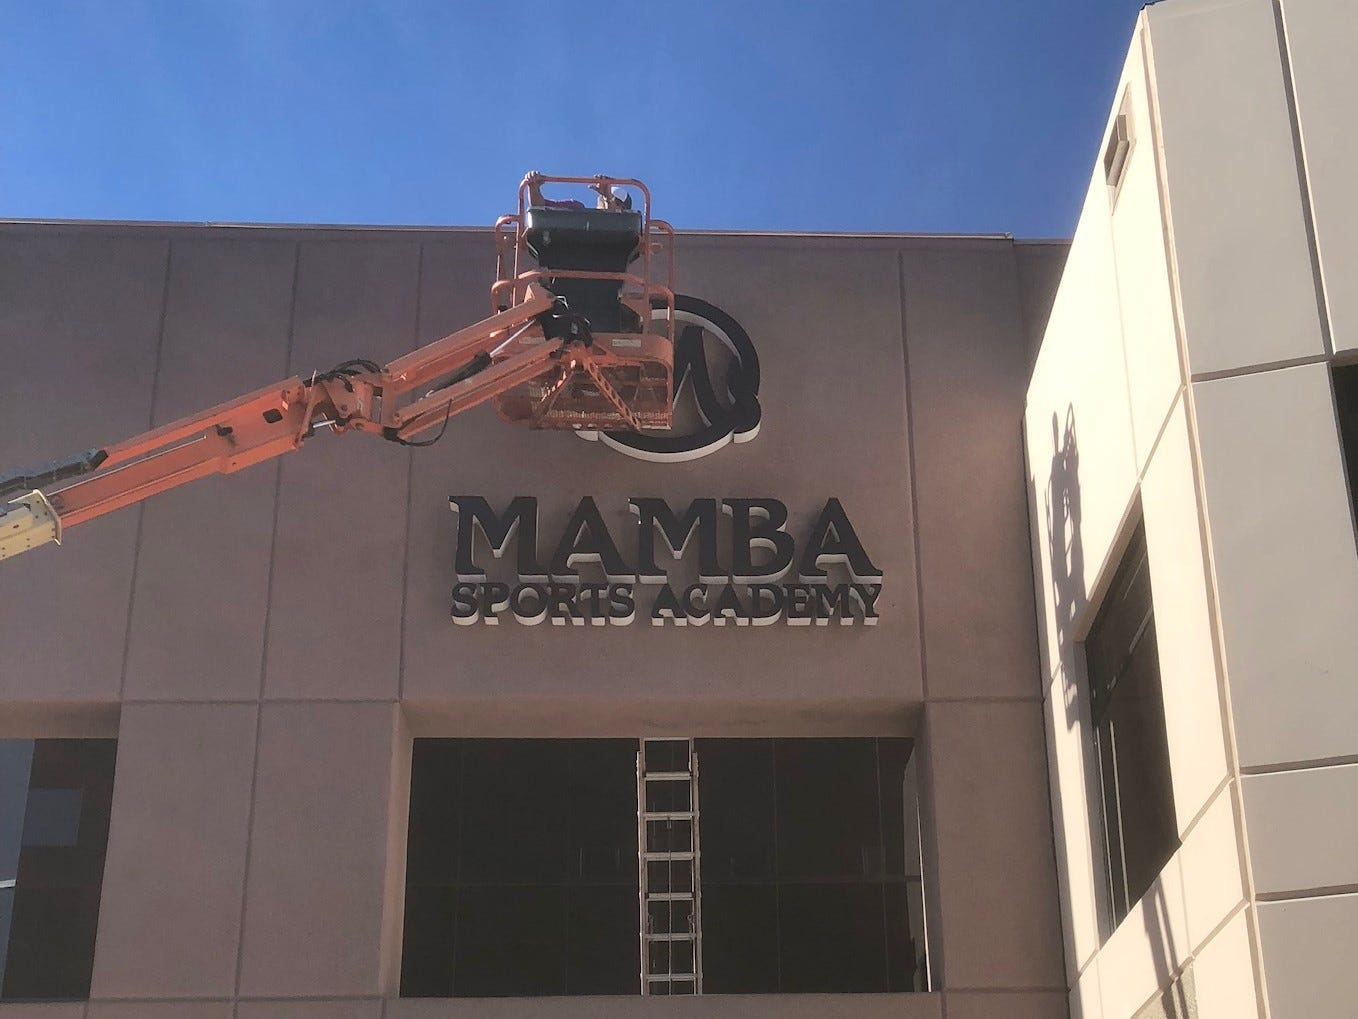 What's next at the newly re-branded Mamba Sports Academy in Newbury Park?